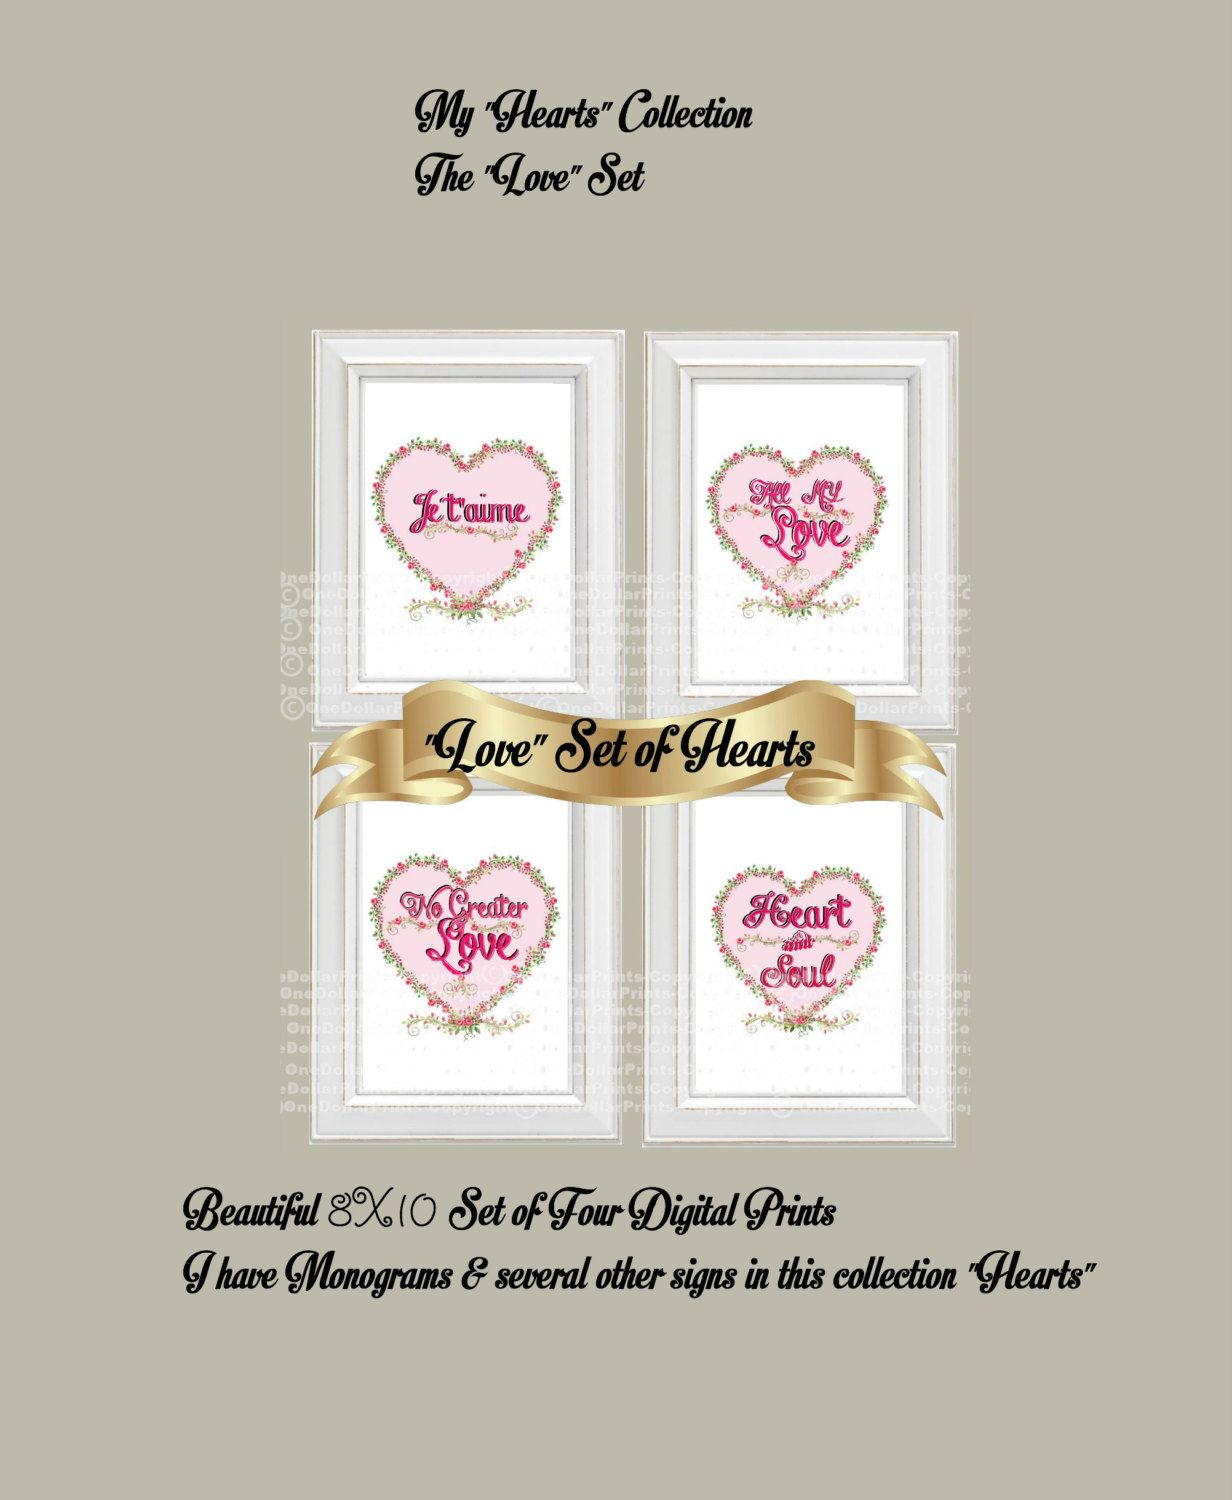 $1.00 Gorgeous set of 4 - $4.00 My Shabby chic LOVE hearts LOVE SET 4 Digital Prints My Hearts Collection by OneDollarPrints